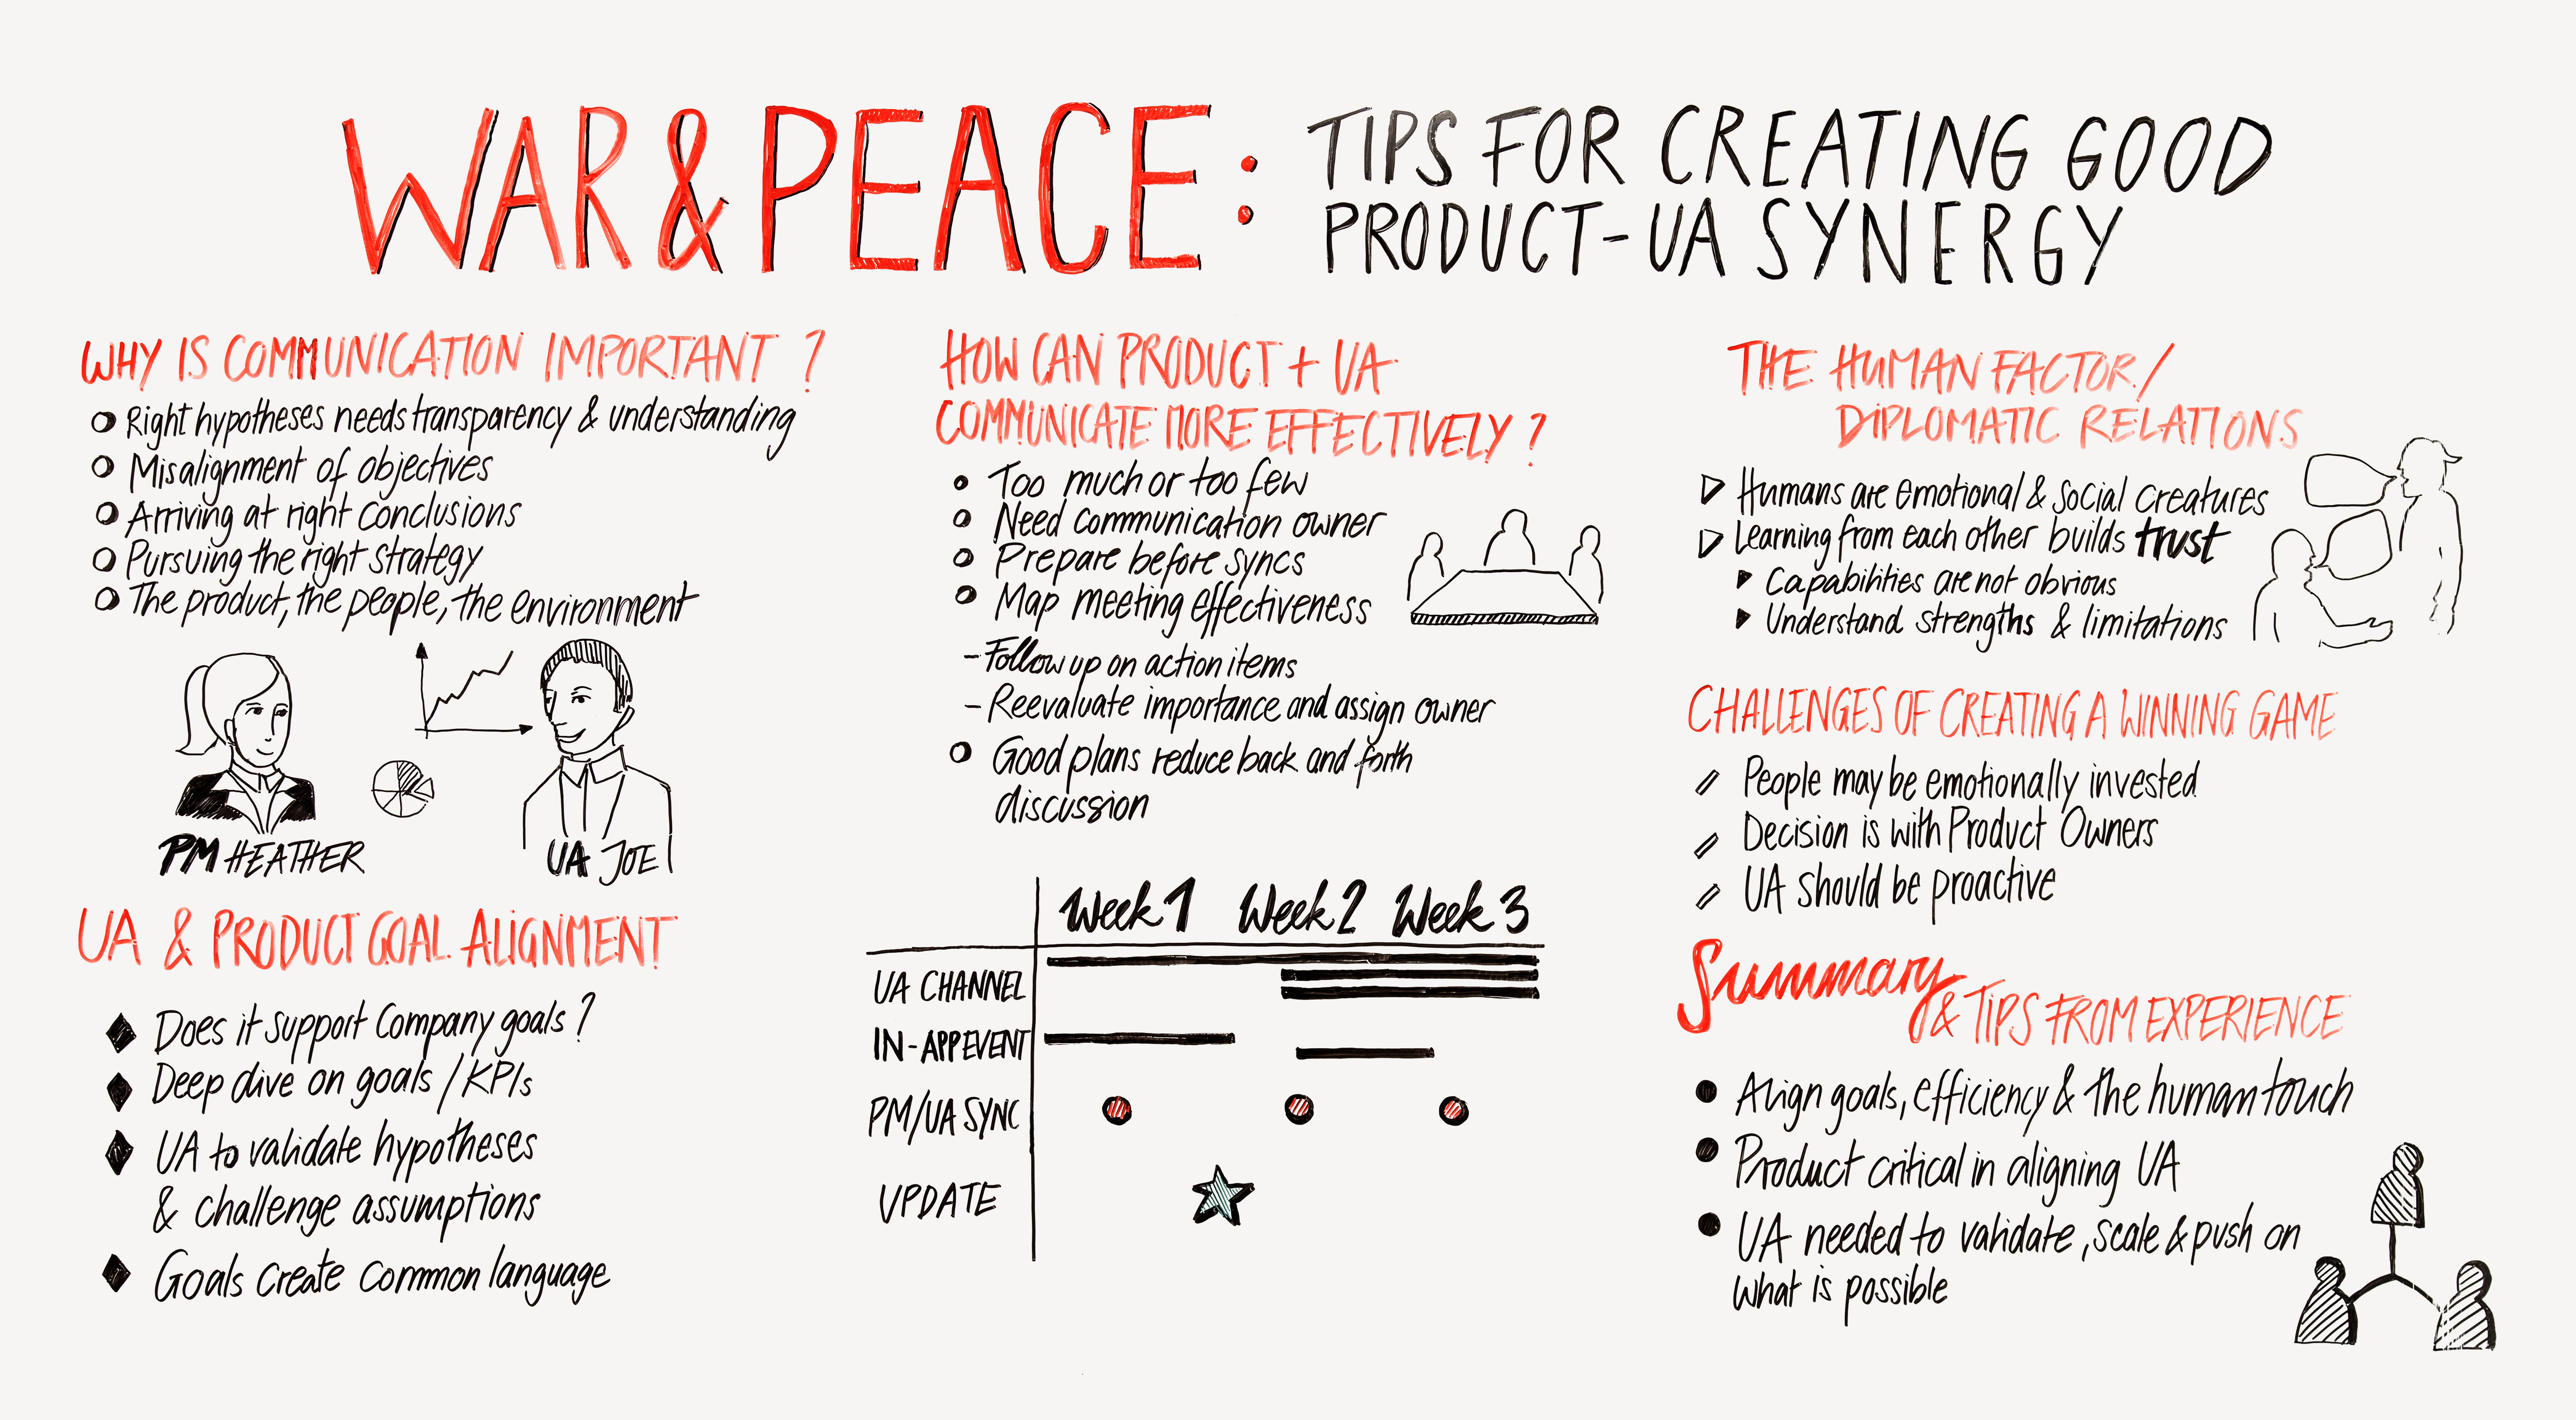 tips for creating product-ua synergy